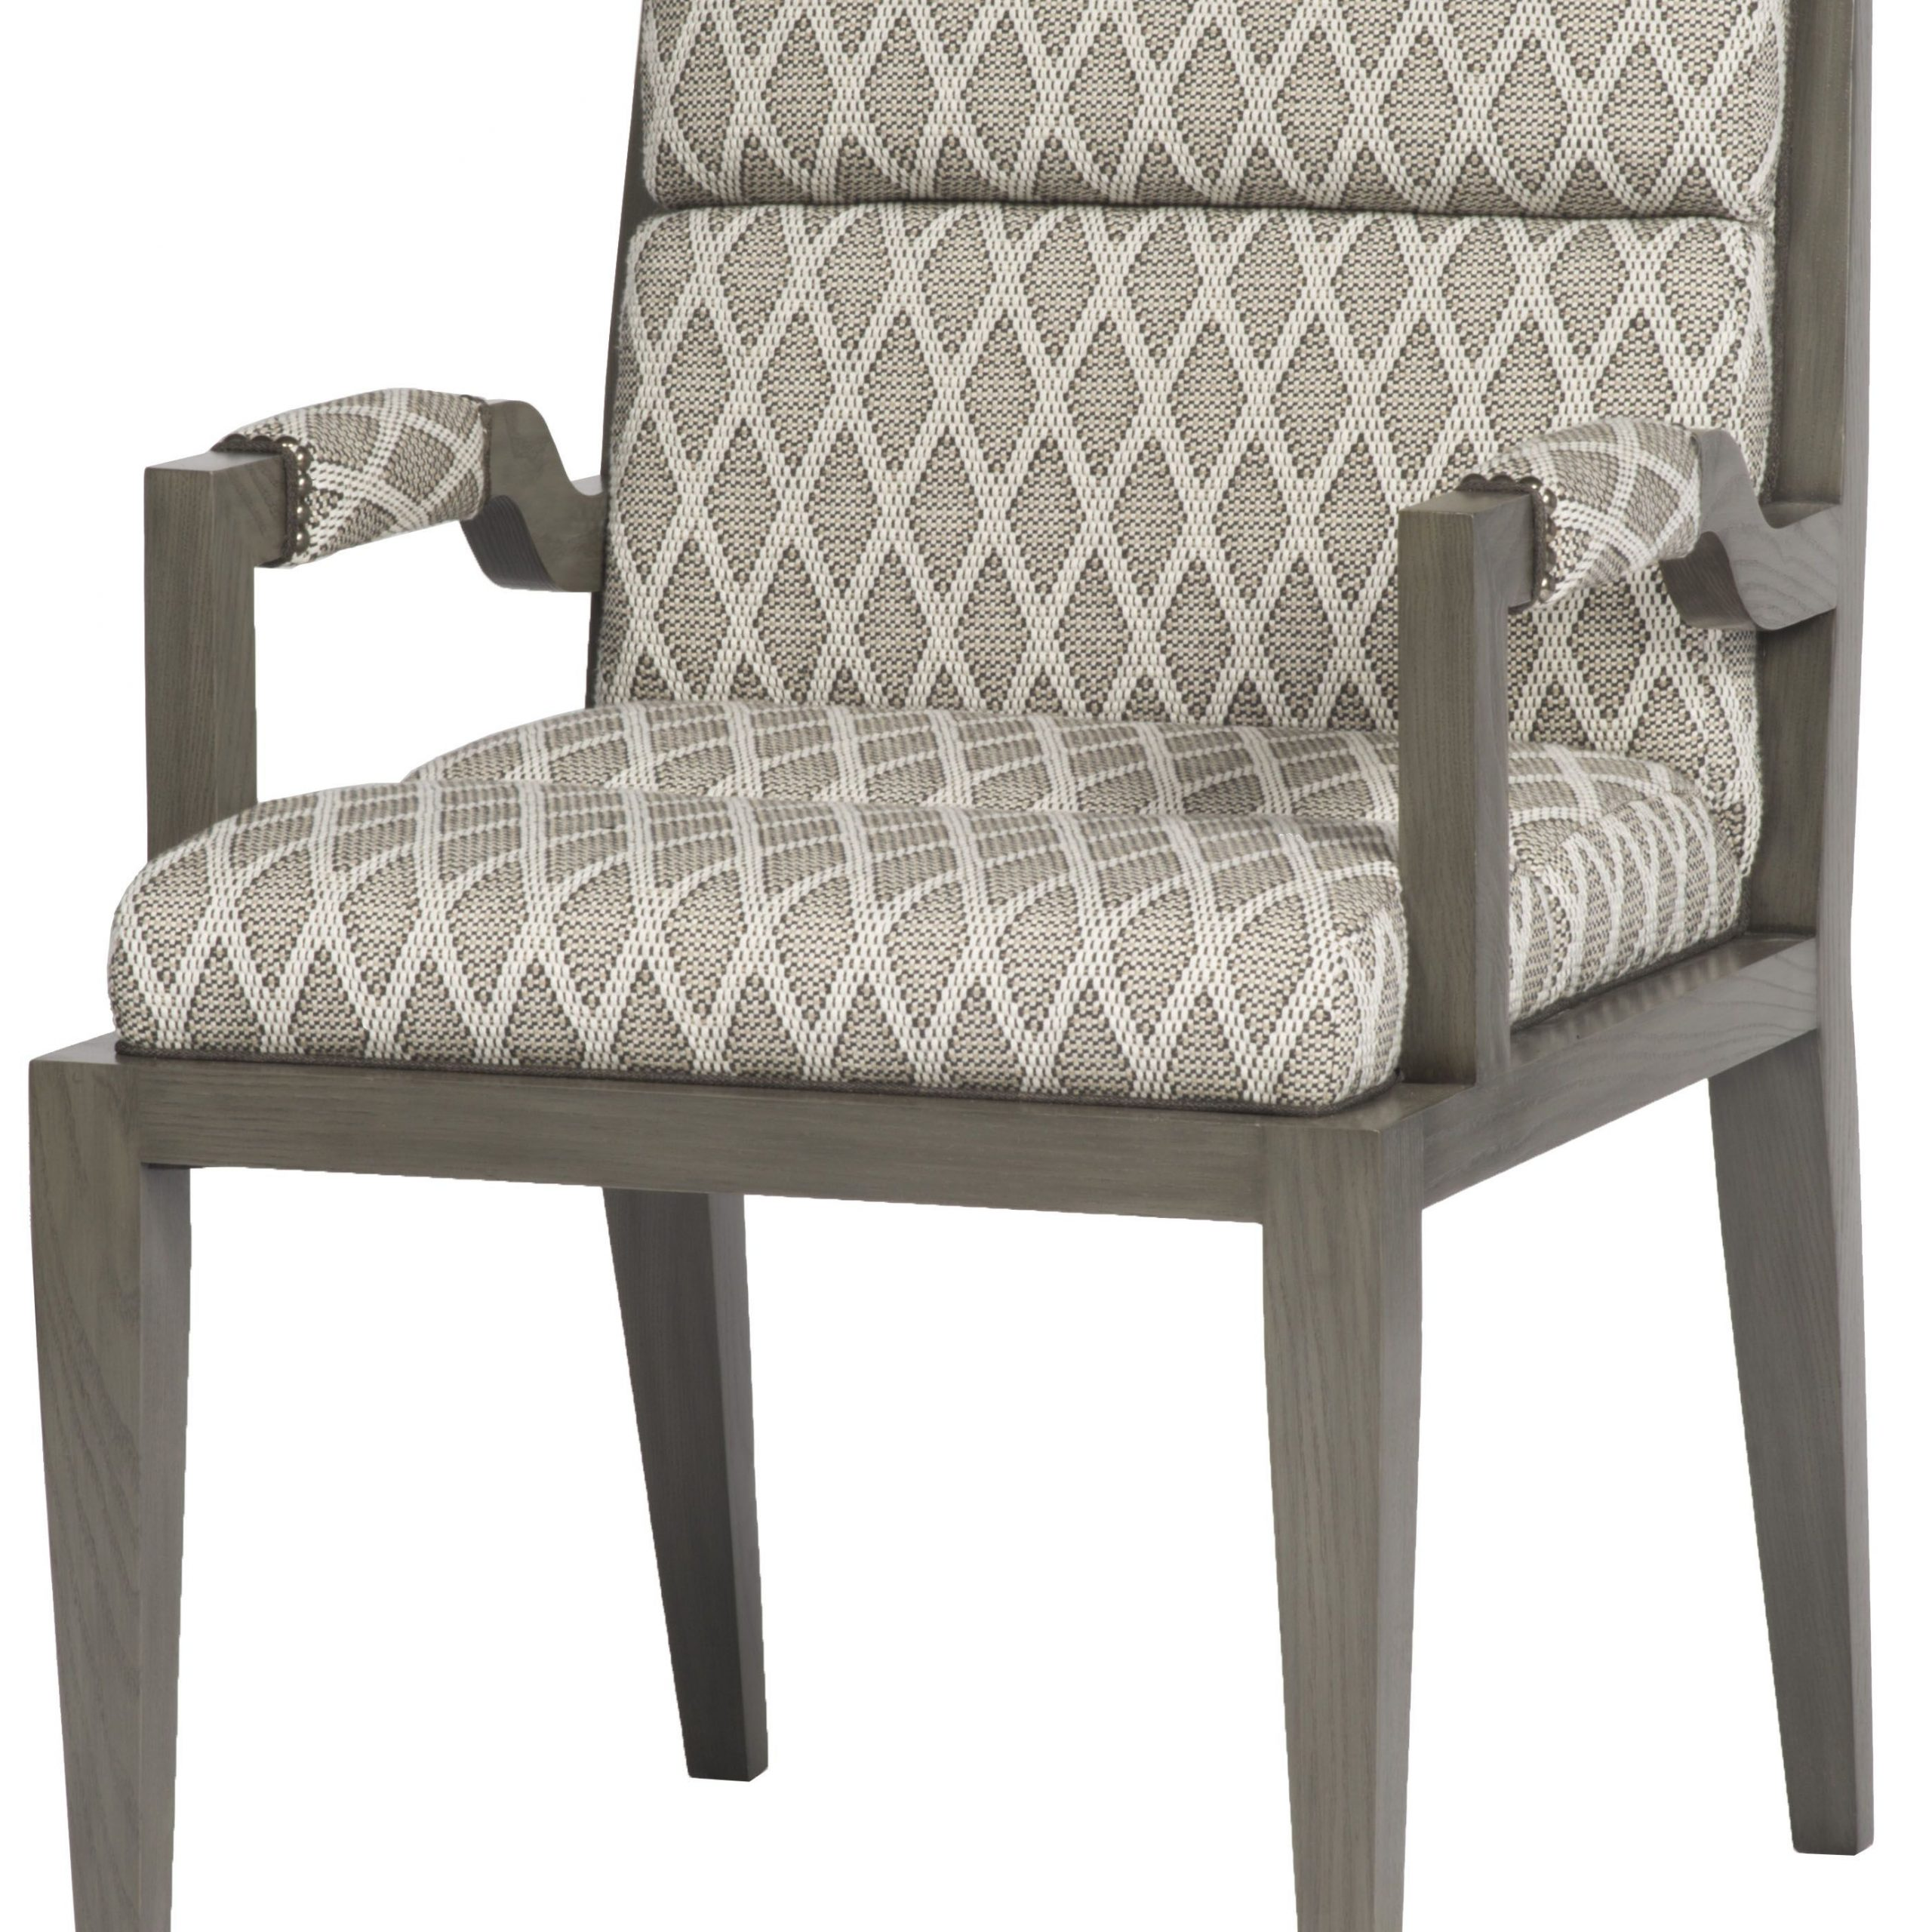 Vanguard Furniture For Most Recent Armory Fabric Armchairs (View 3 of 20)